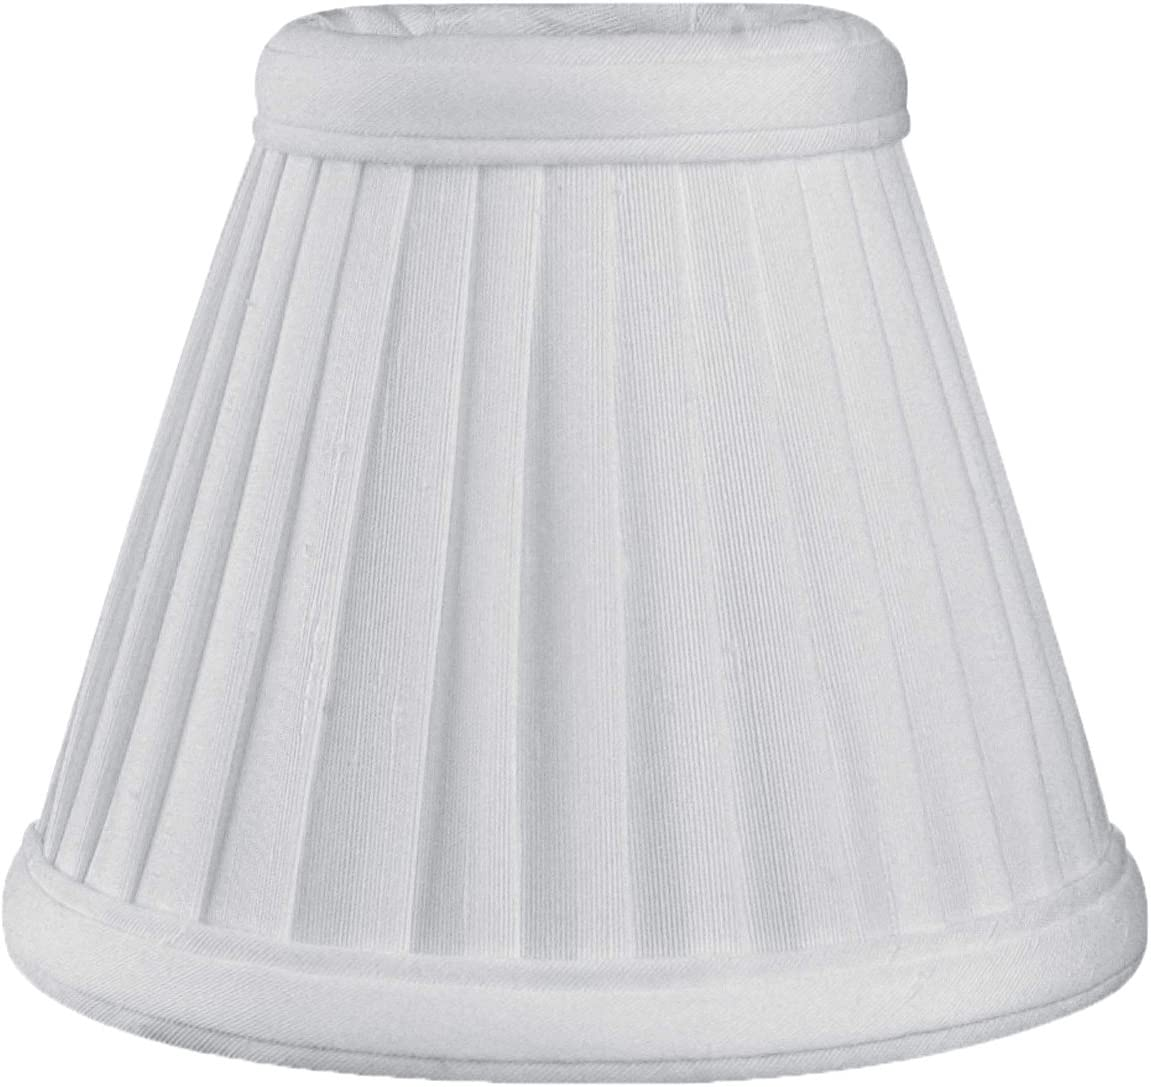 6 Pack Royal Designs Pleated Empire Chandelier Lamp Shade, White Size 5 CS-111WH-6